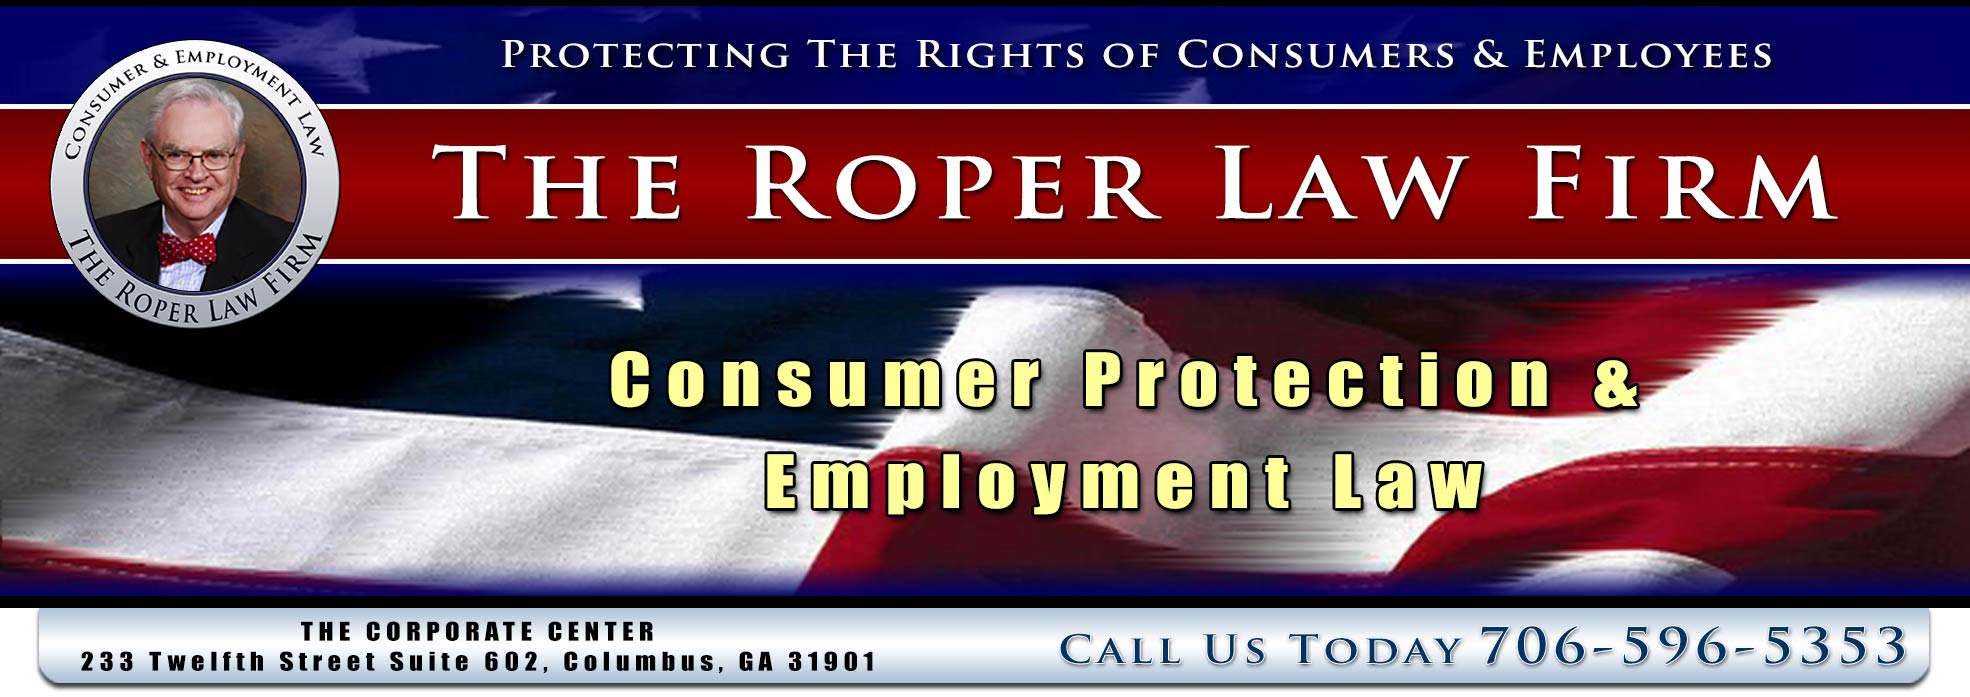 The Roper Law Firm